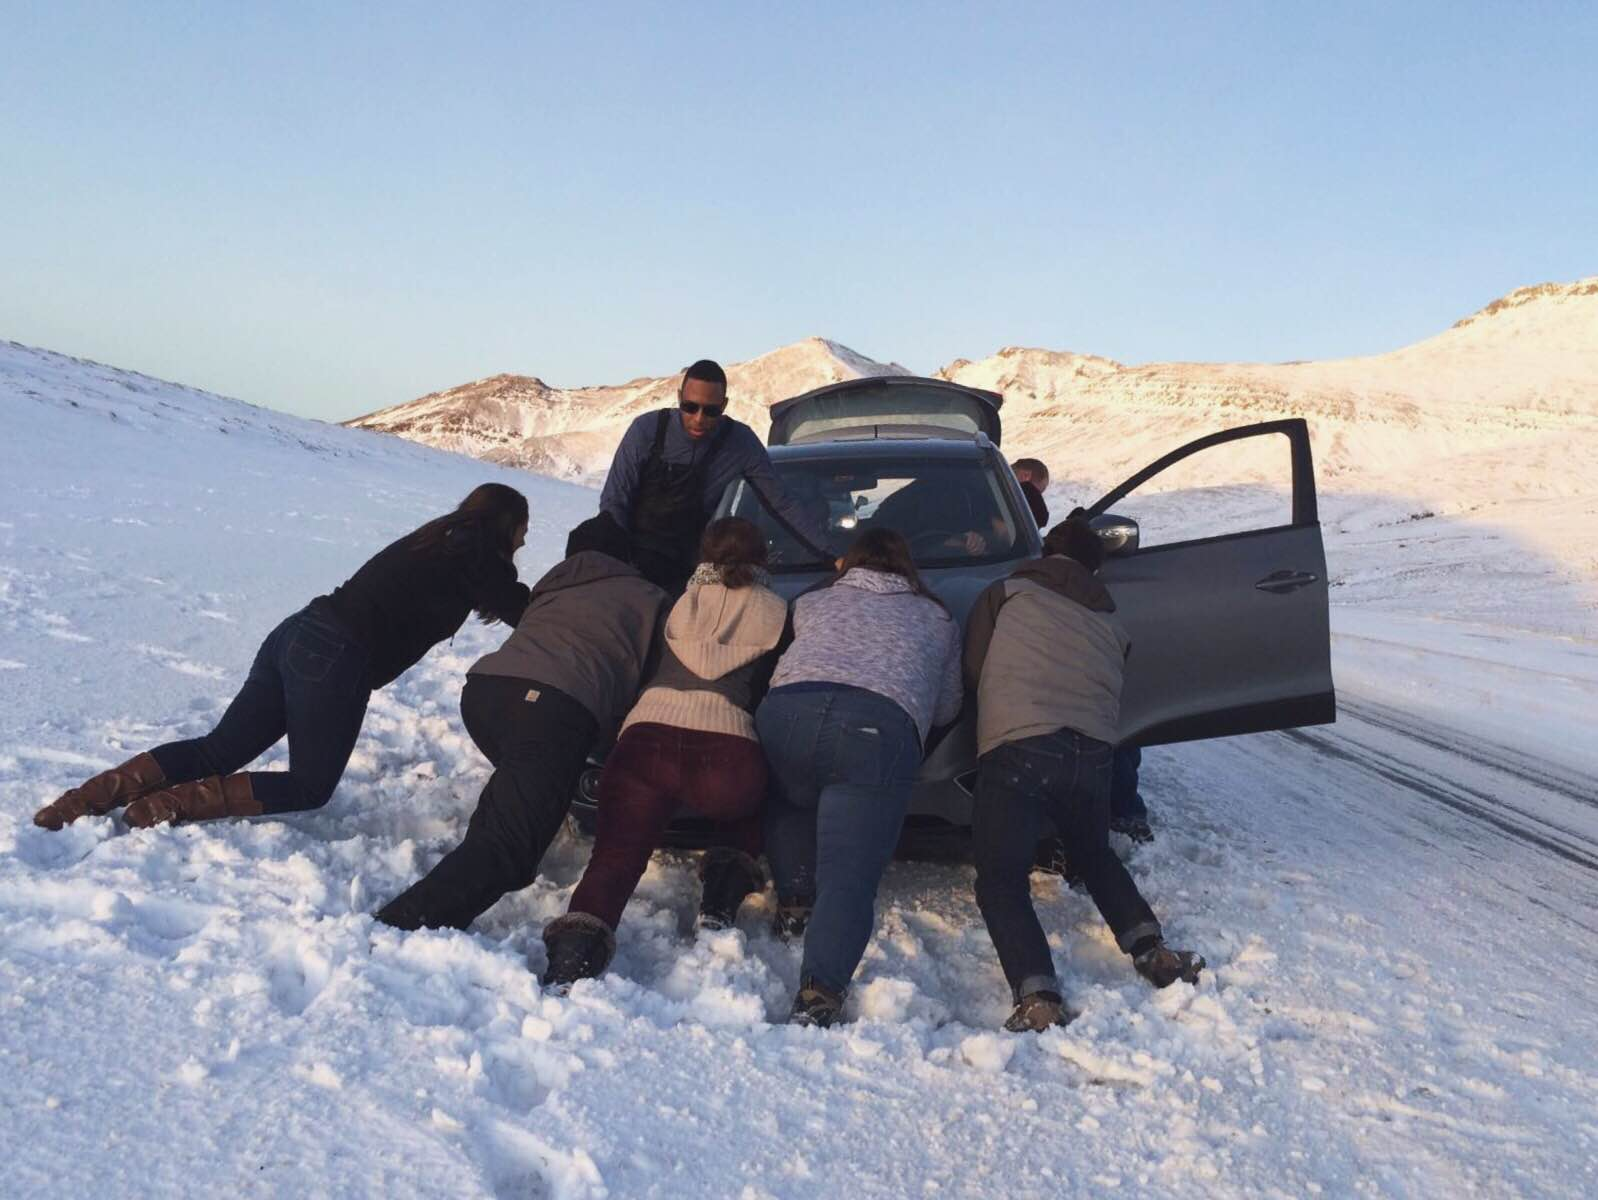 We pushed in vain. A superhero disguised as an assuming Icelander named Johann eventually pulled us out with his truck.